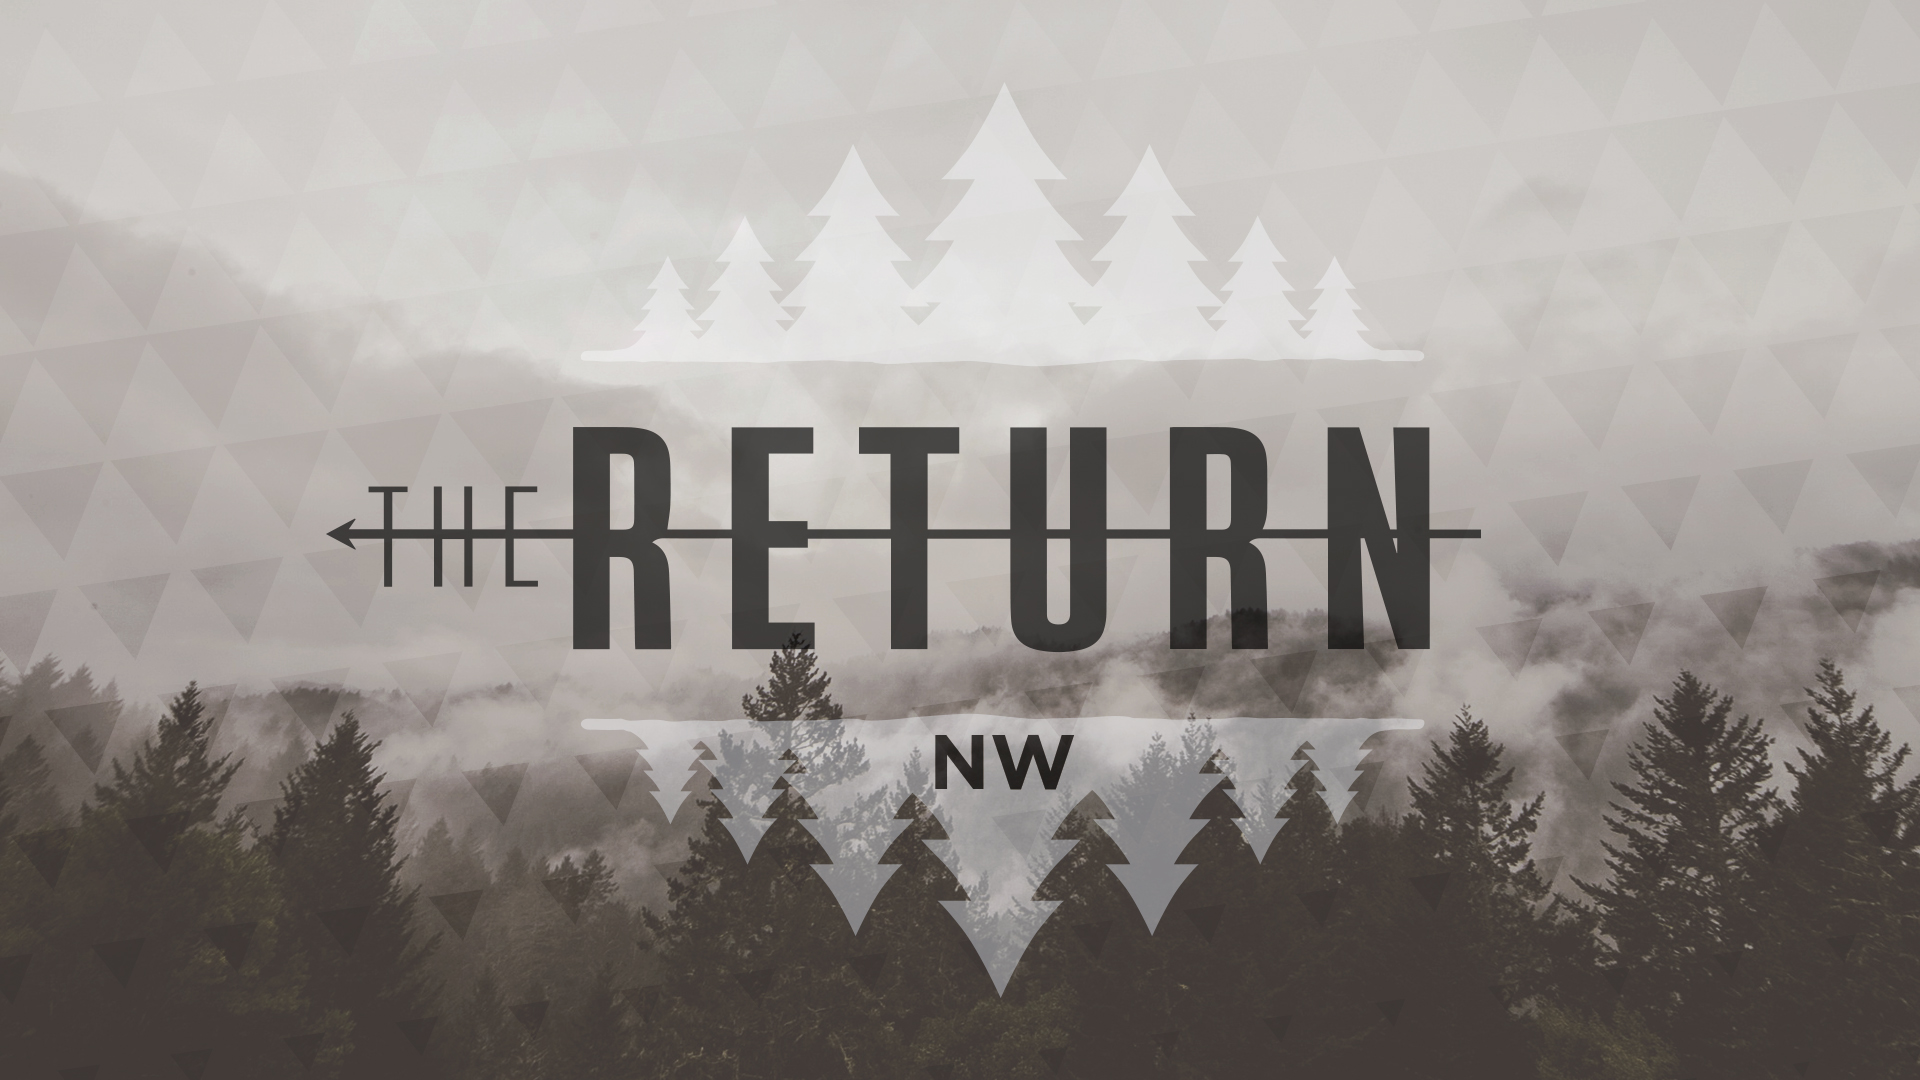 the-return-website.jpg